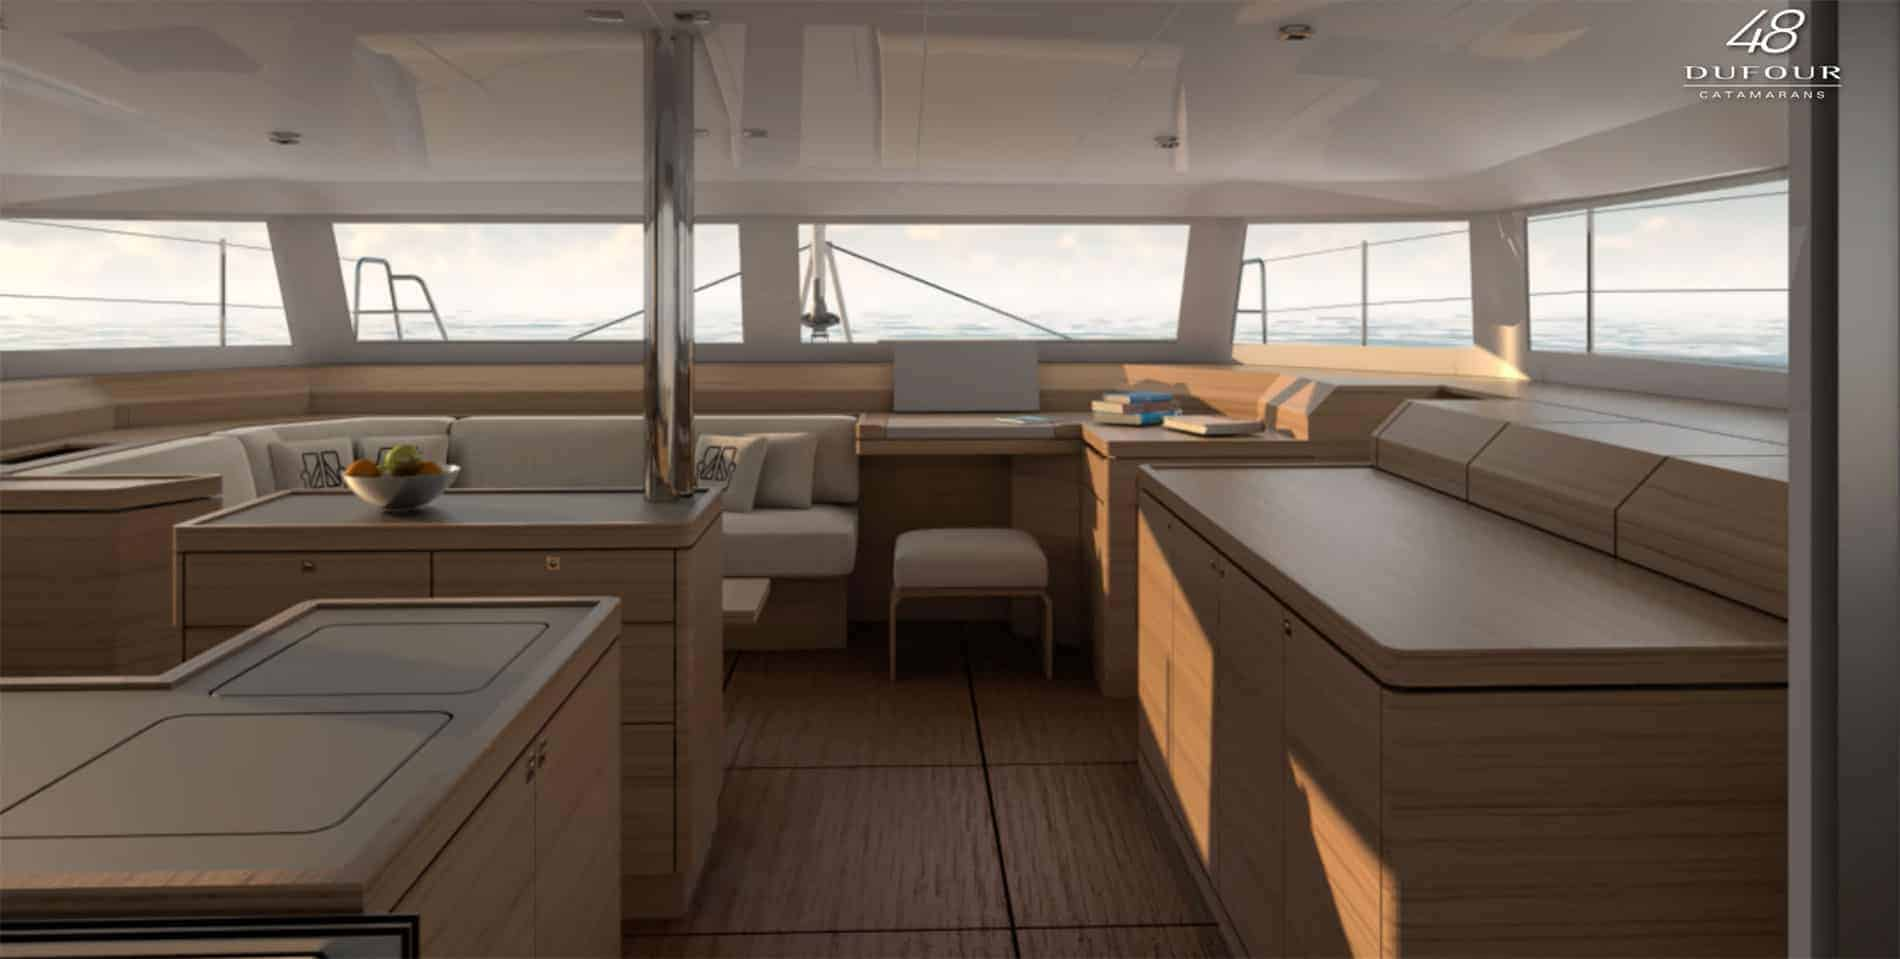 Overview of the beautiful and spacious saloon of the Dufour Catamaran 48